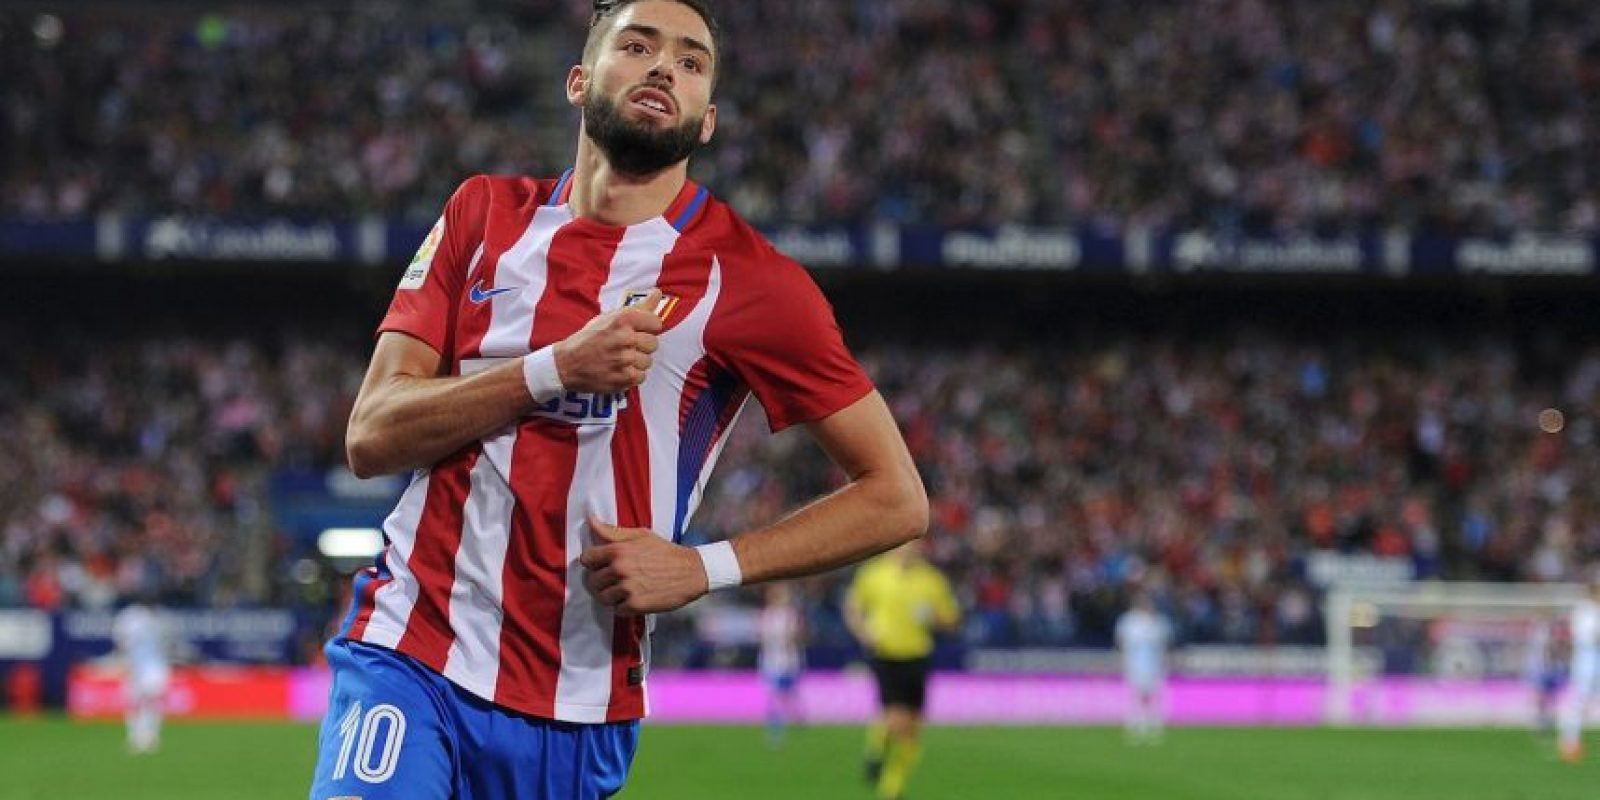 Yannick Carrasco (Atlético de Madrid) Foto: Getty Images